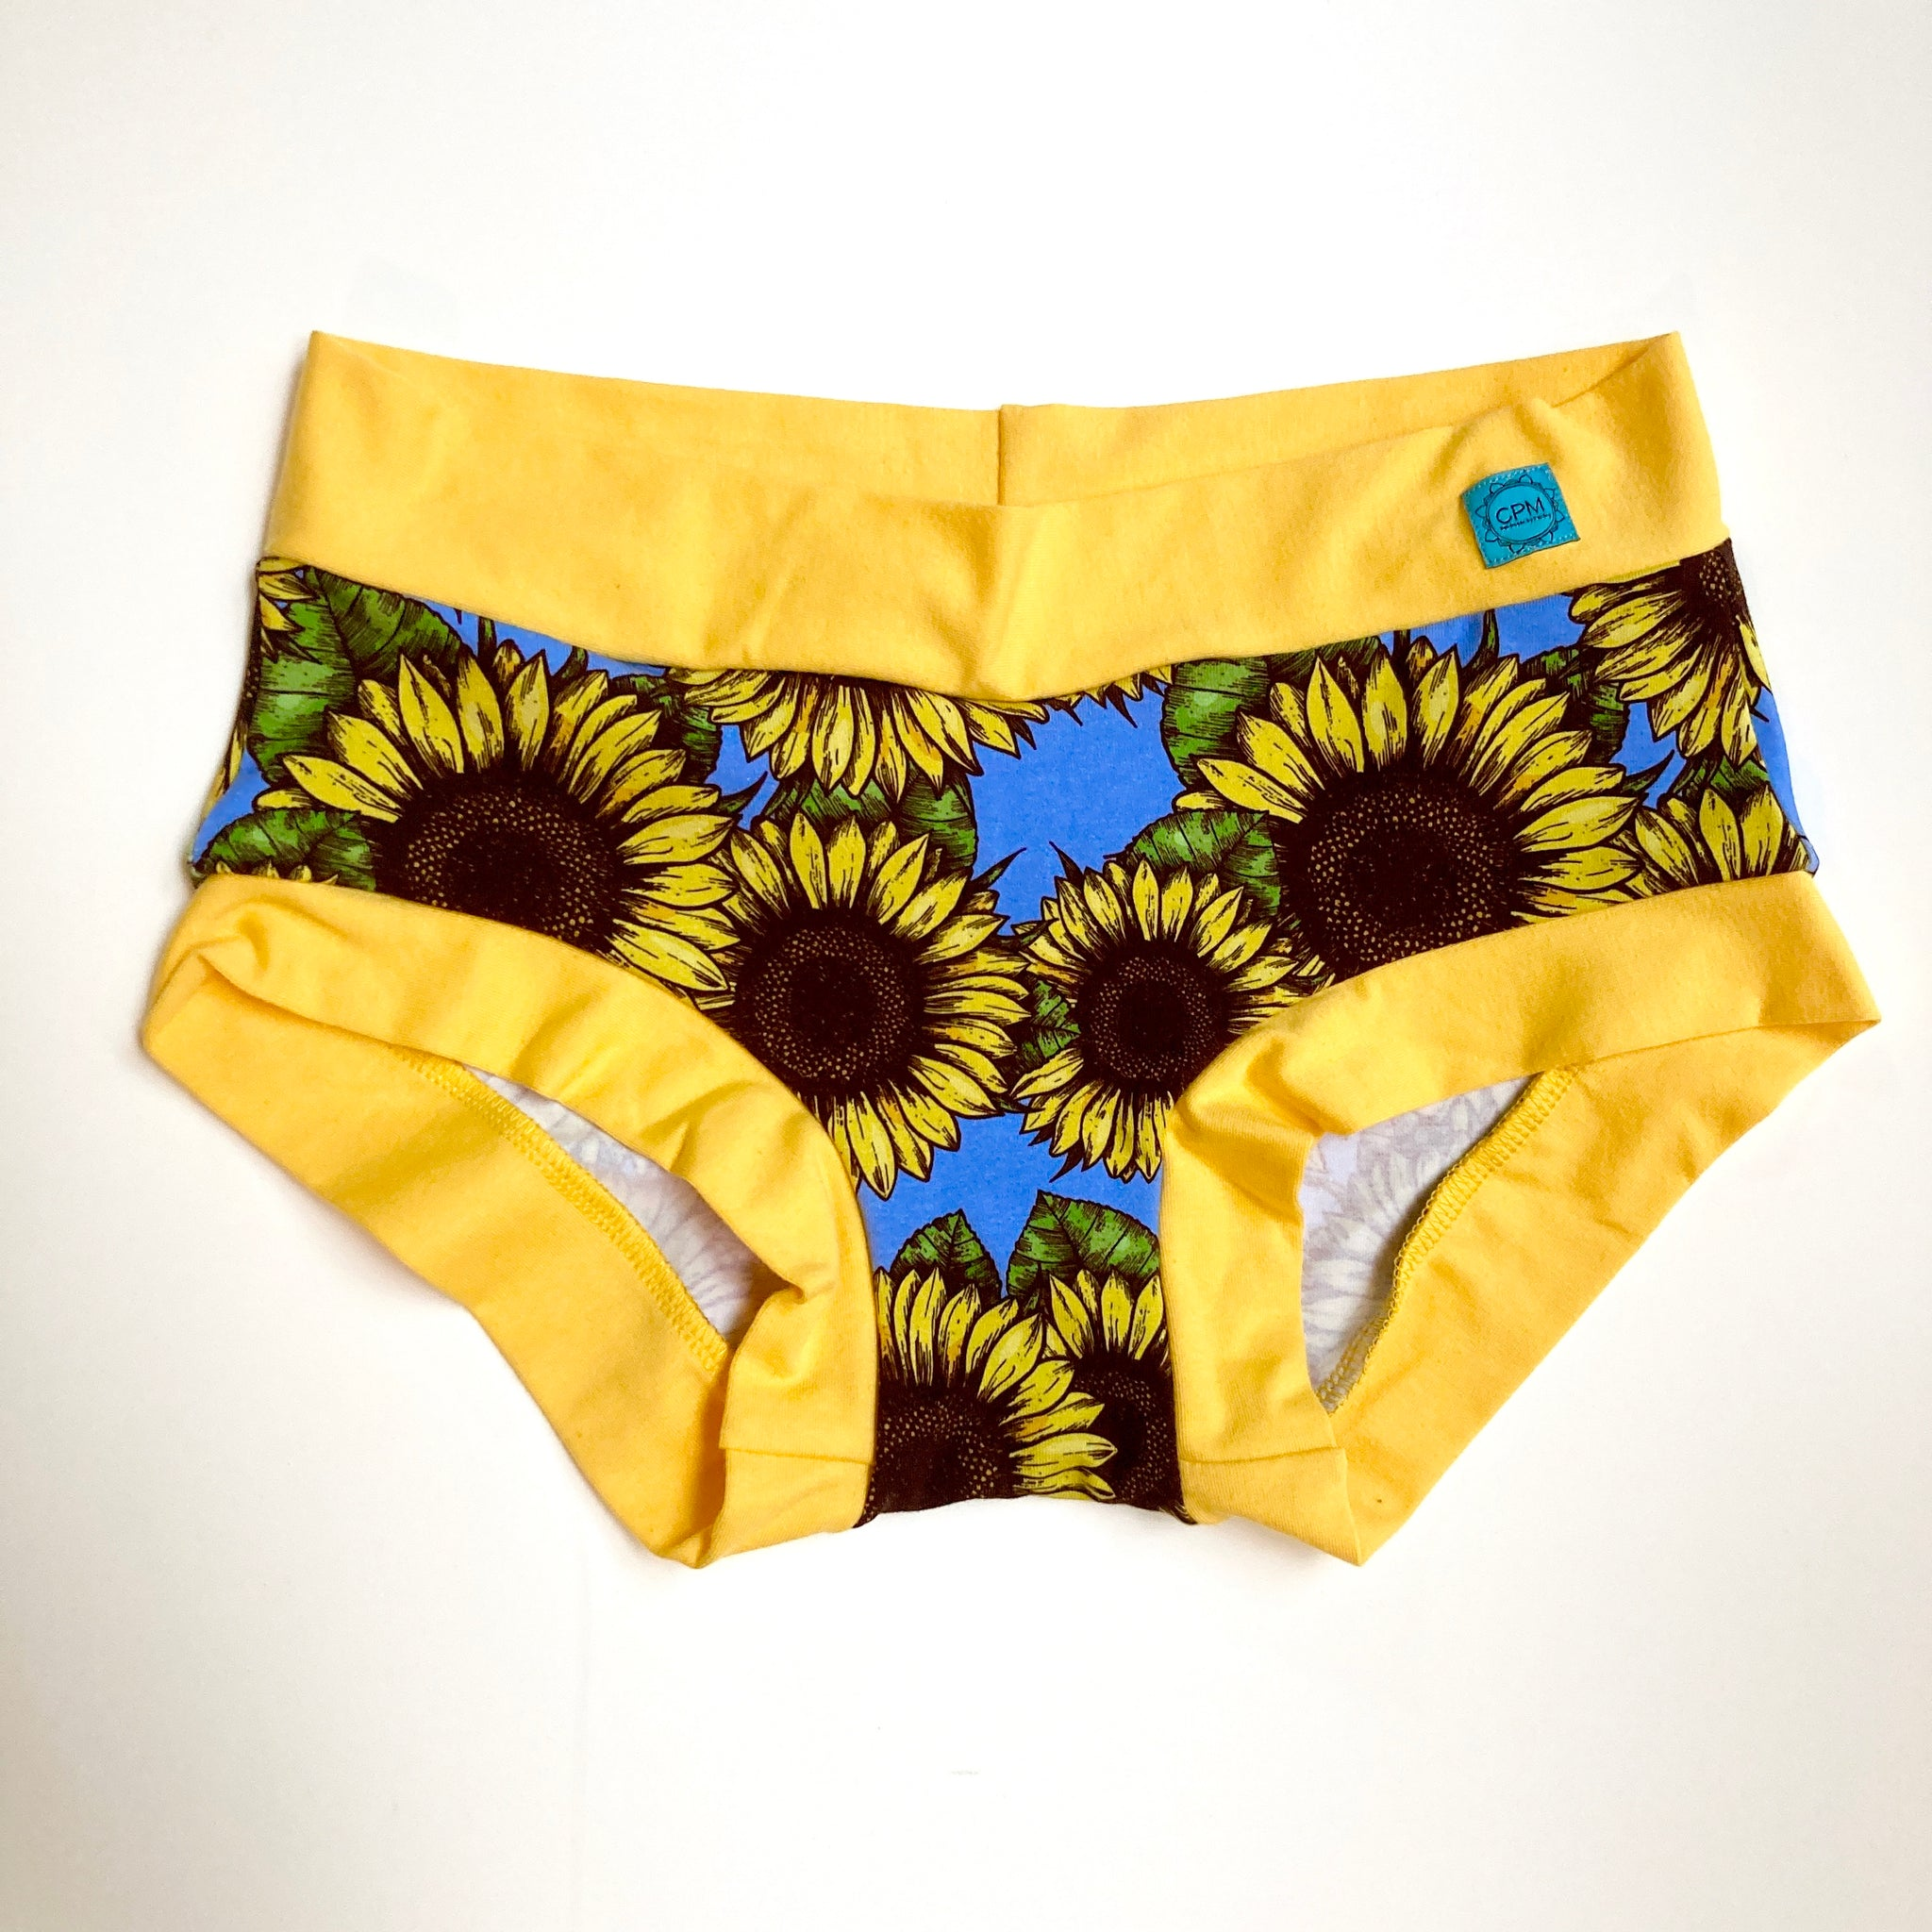 Women's Hipster Boy leg Underwear : Sunflower Symphony with Yellow